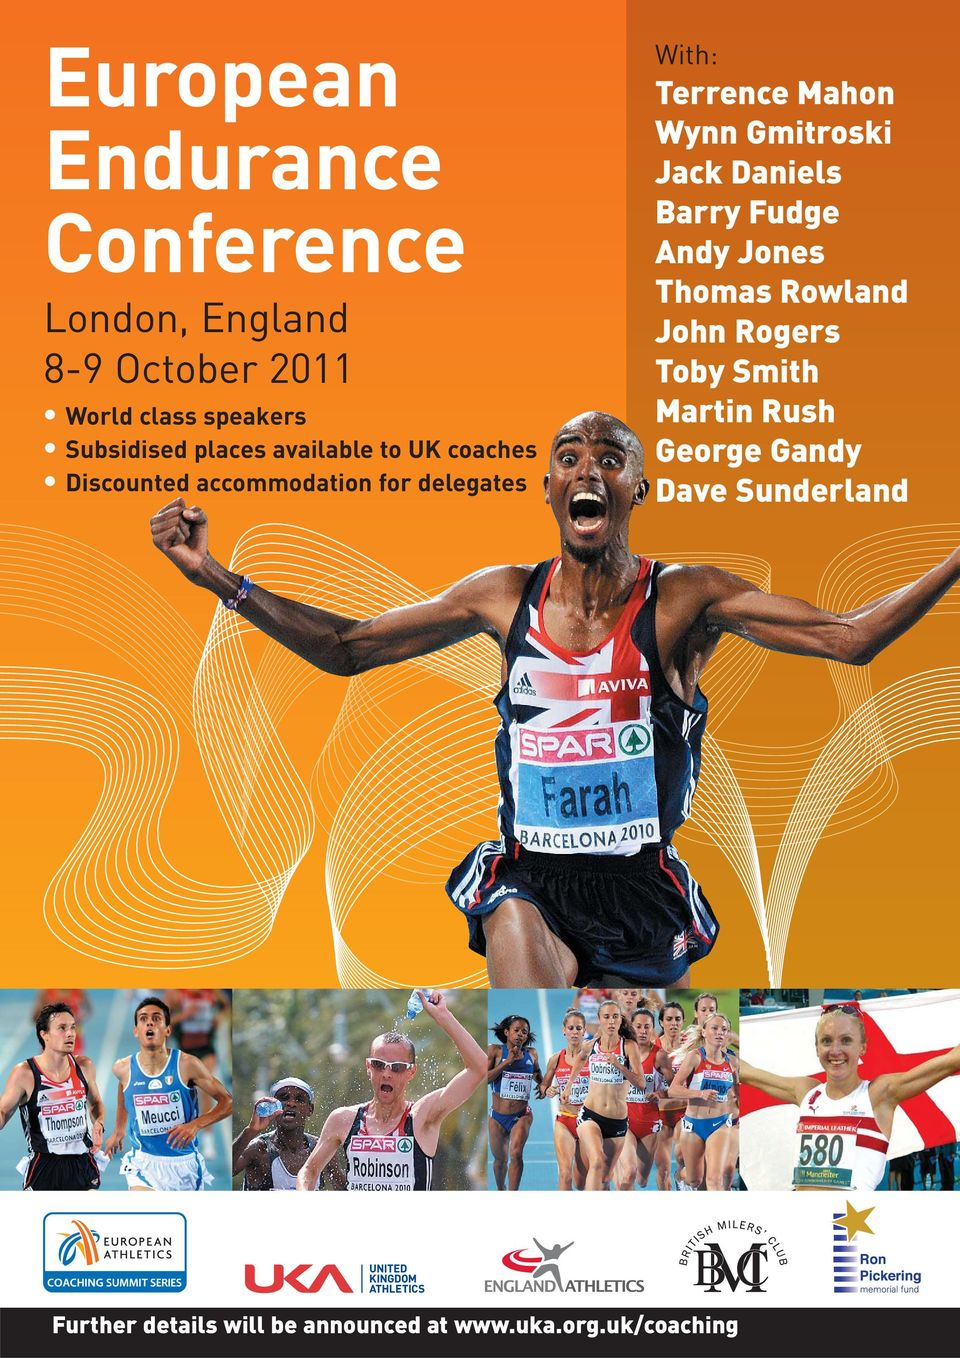 accommodation for delegates With: Barry Fudge Andy Jones John Rogers